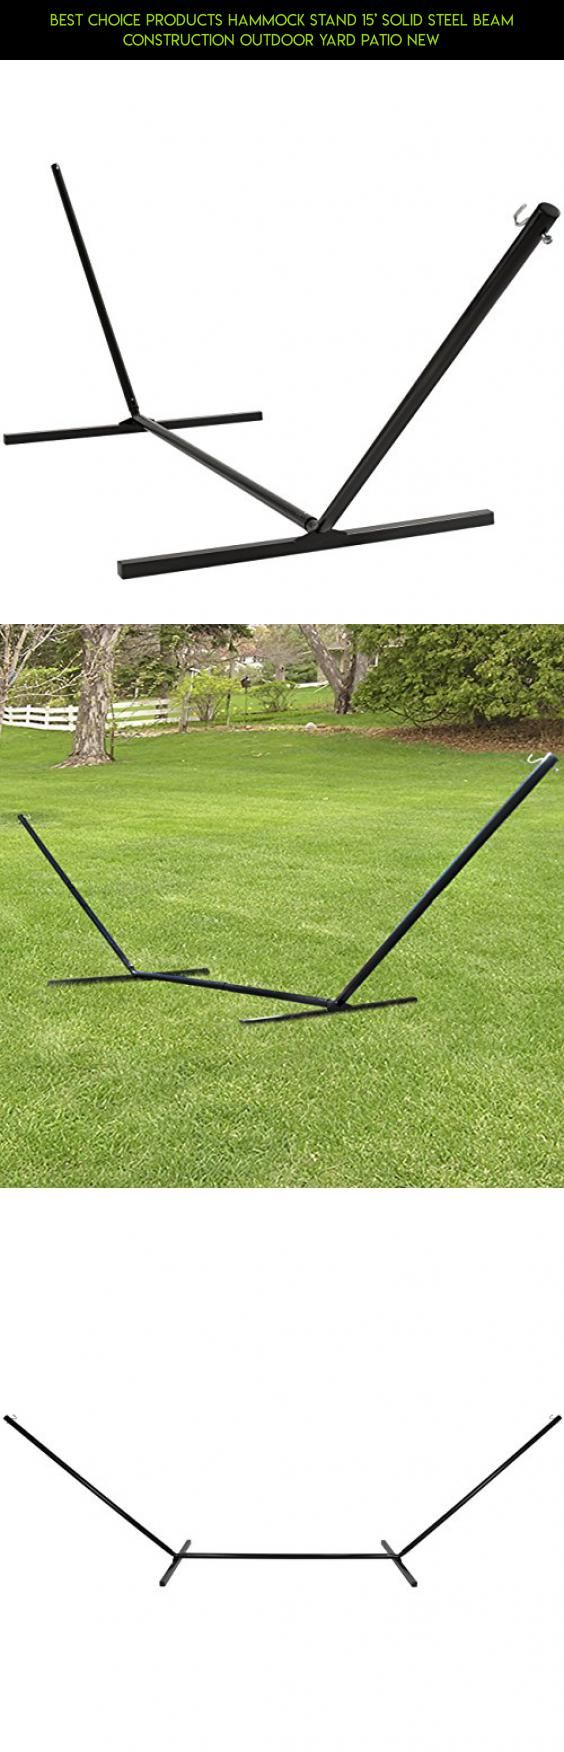 Best choice products hammock stand u solid steel beam construction